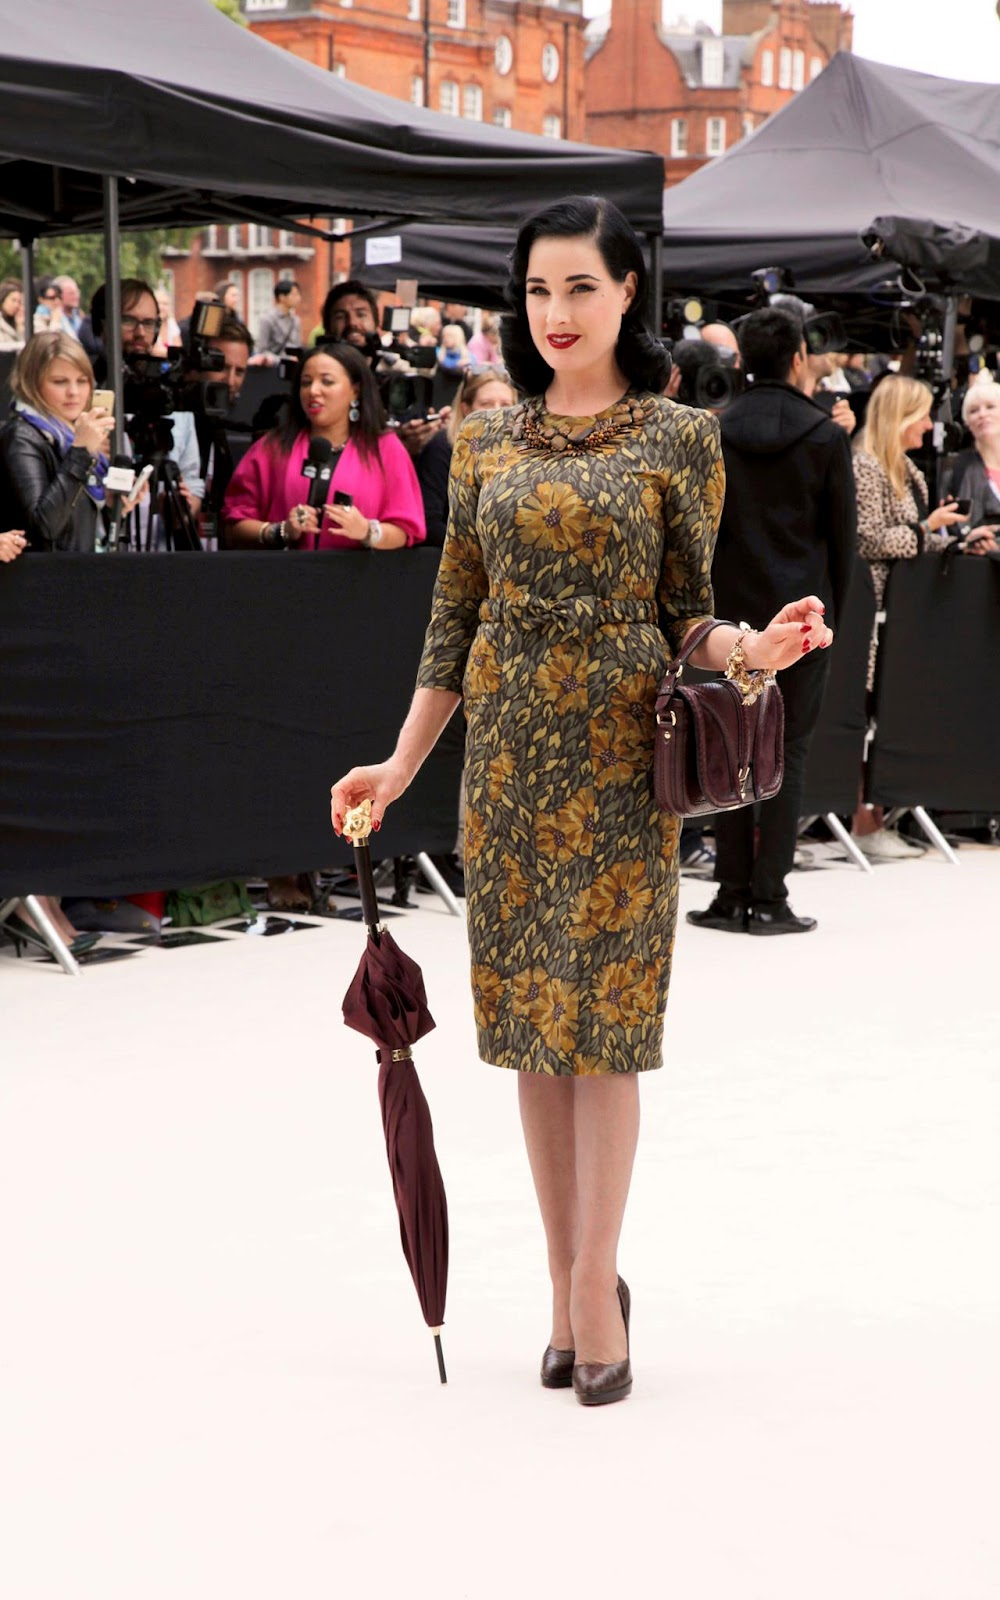 dita von teese, burberry dress